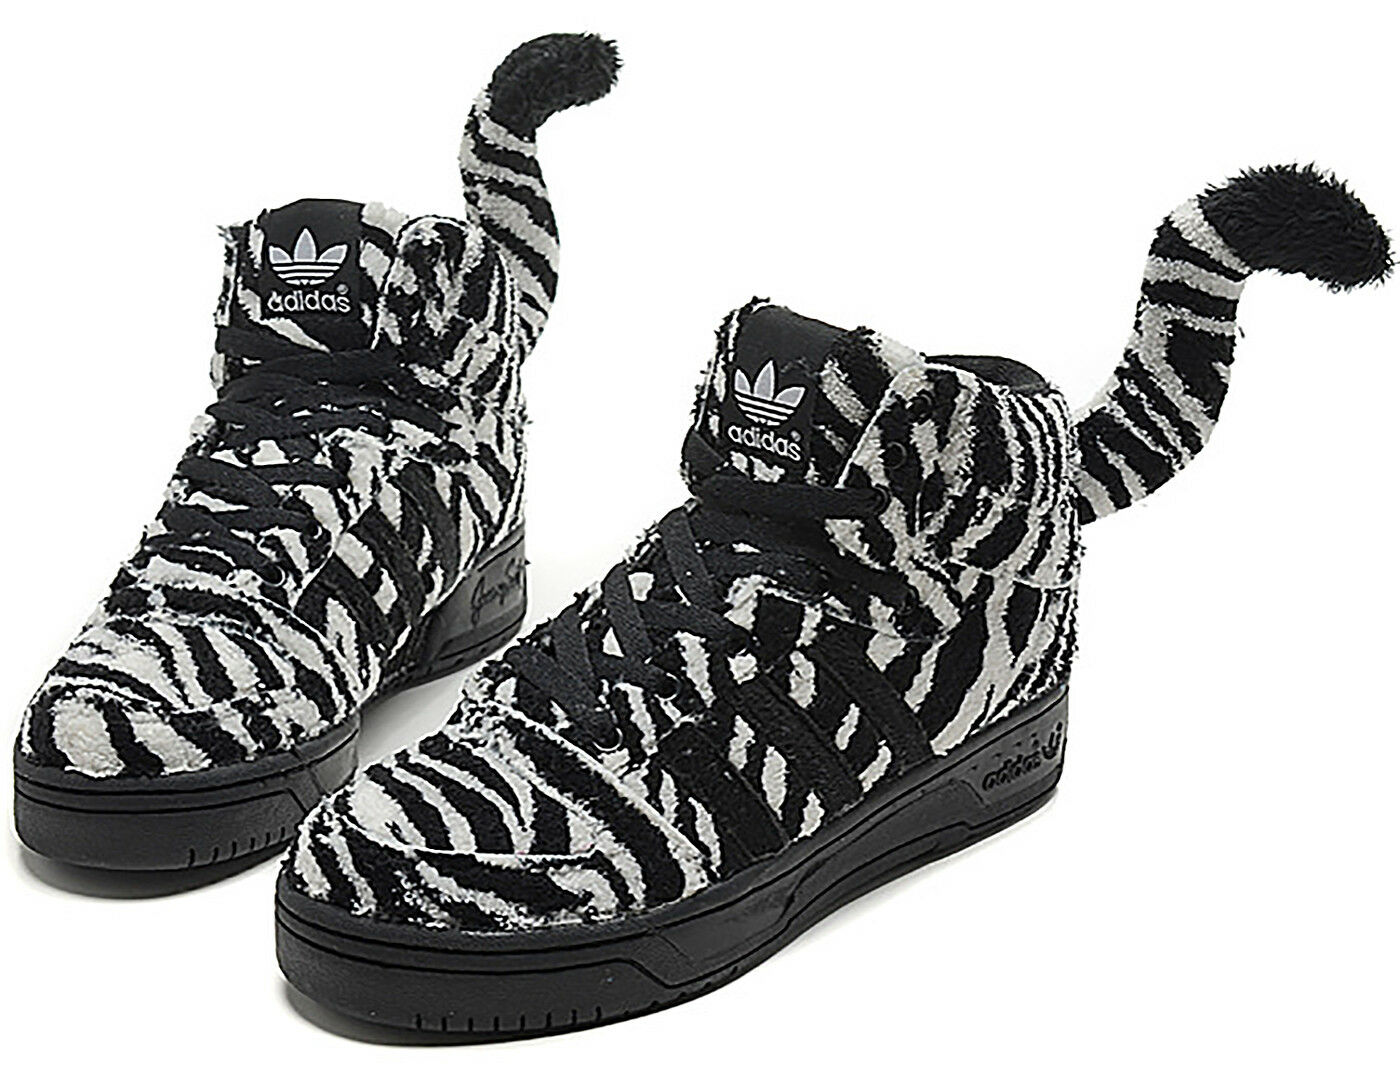 Jeremy Scott X Adidas Originals Zebra Tail High Top Sneakers Men's Size 9.5